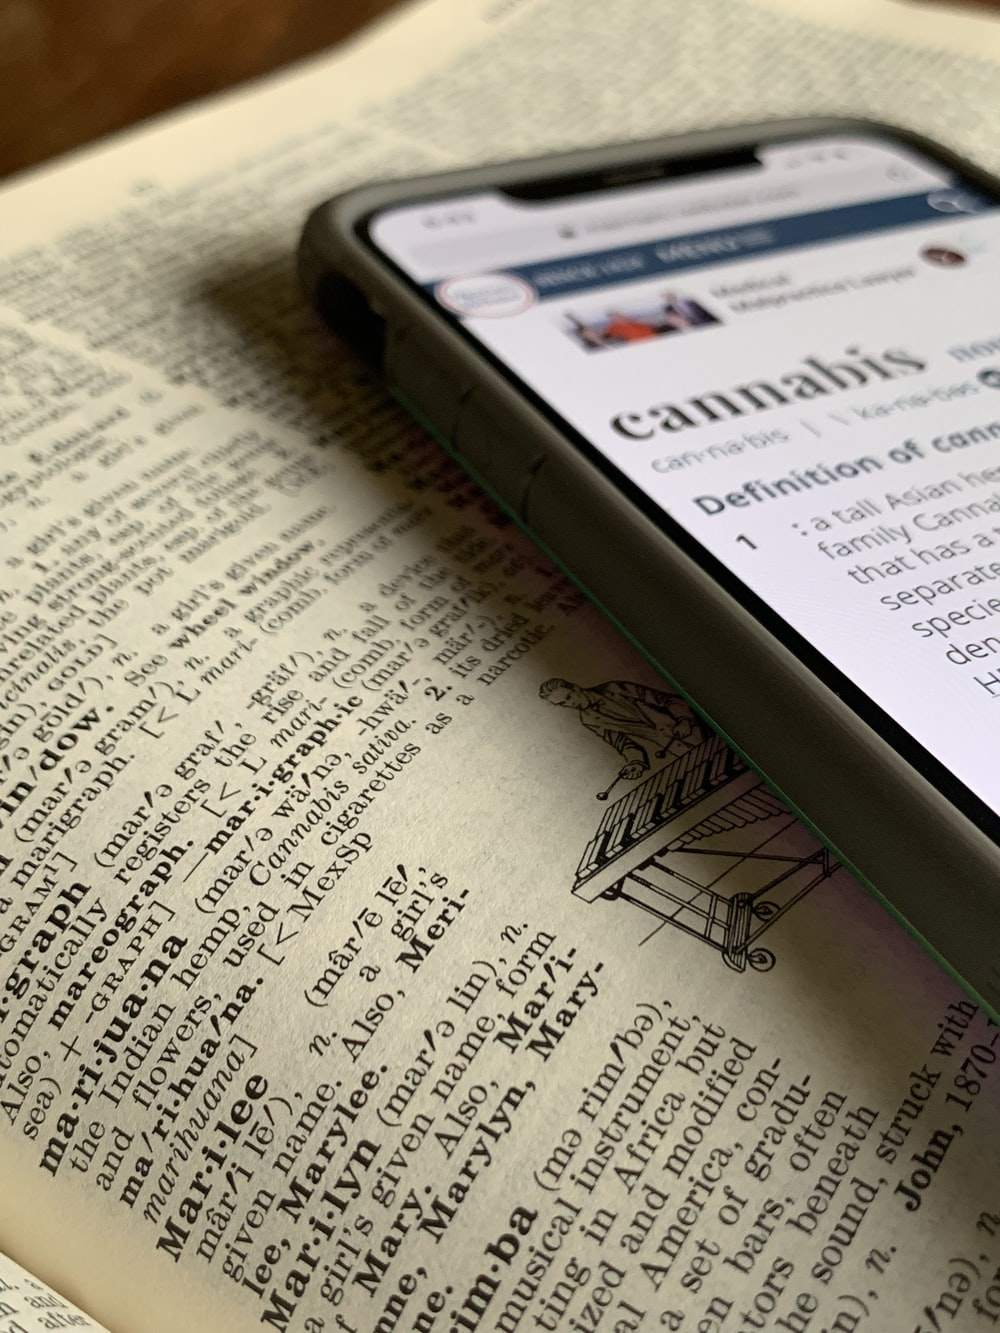 silver iPhone X displaying cannabis definition on top of dictionary